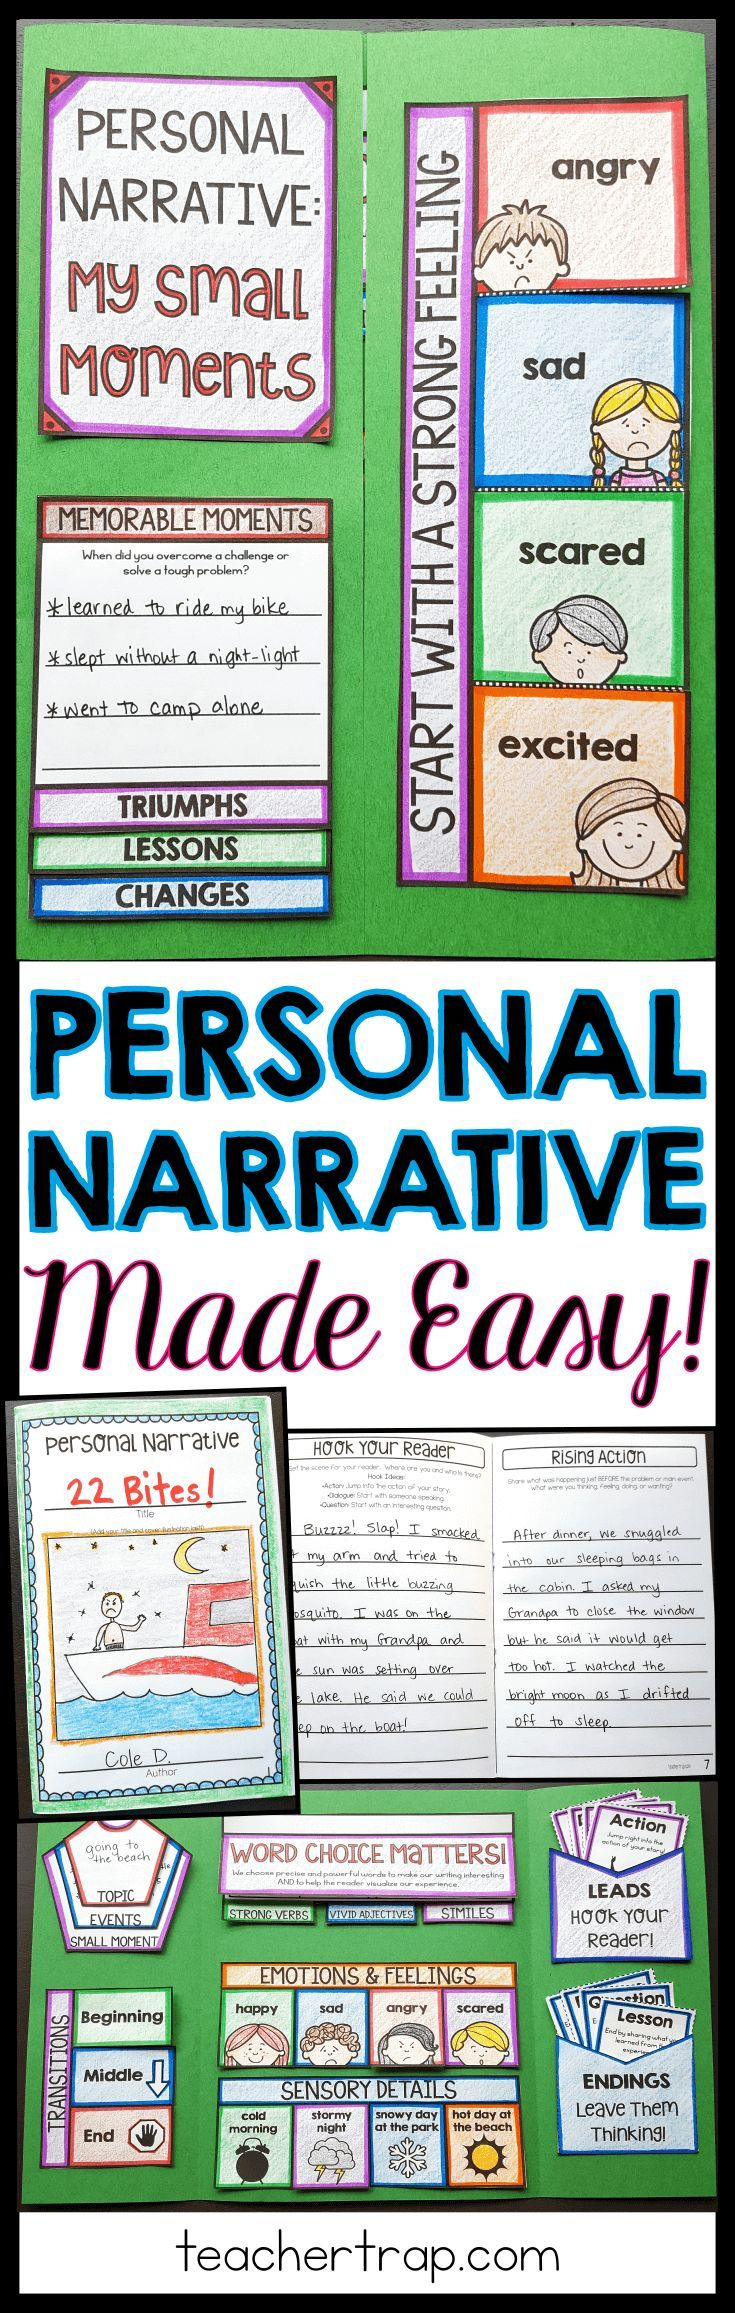 famous personal narrative essays Free free personal narrative essays papers, essays, and research papers.